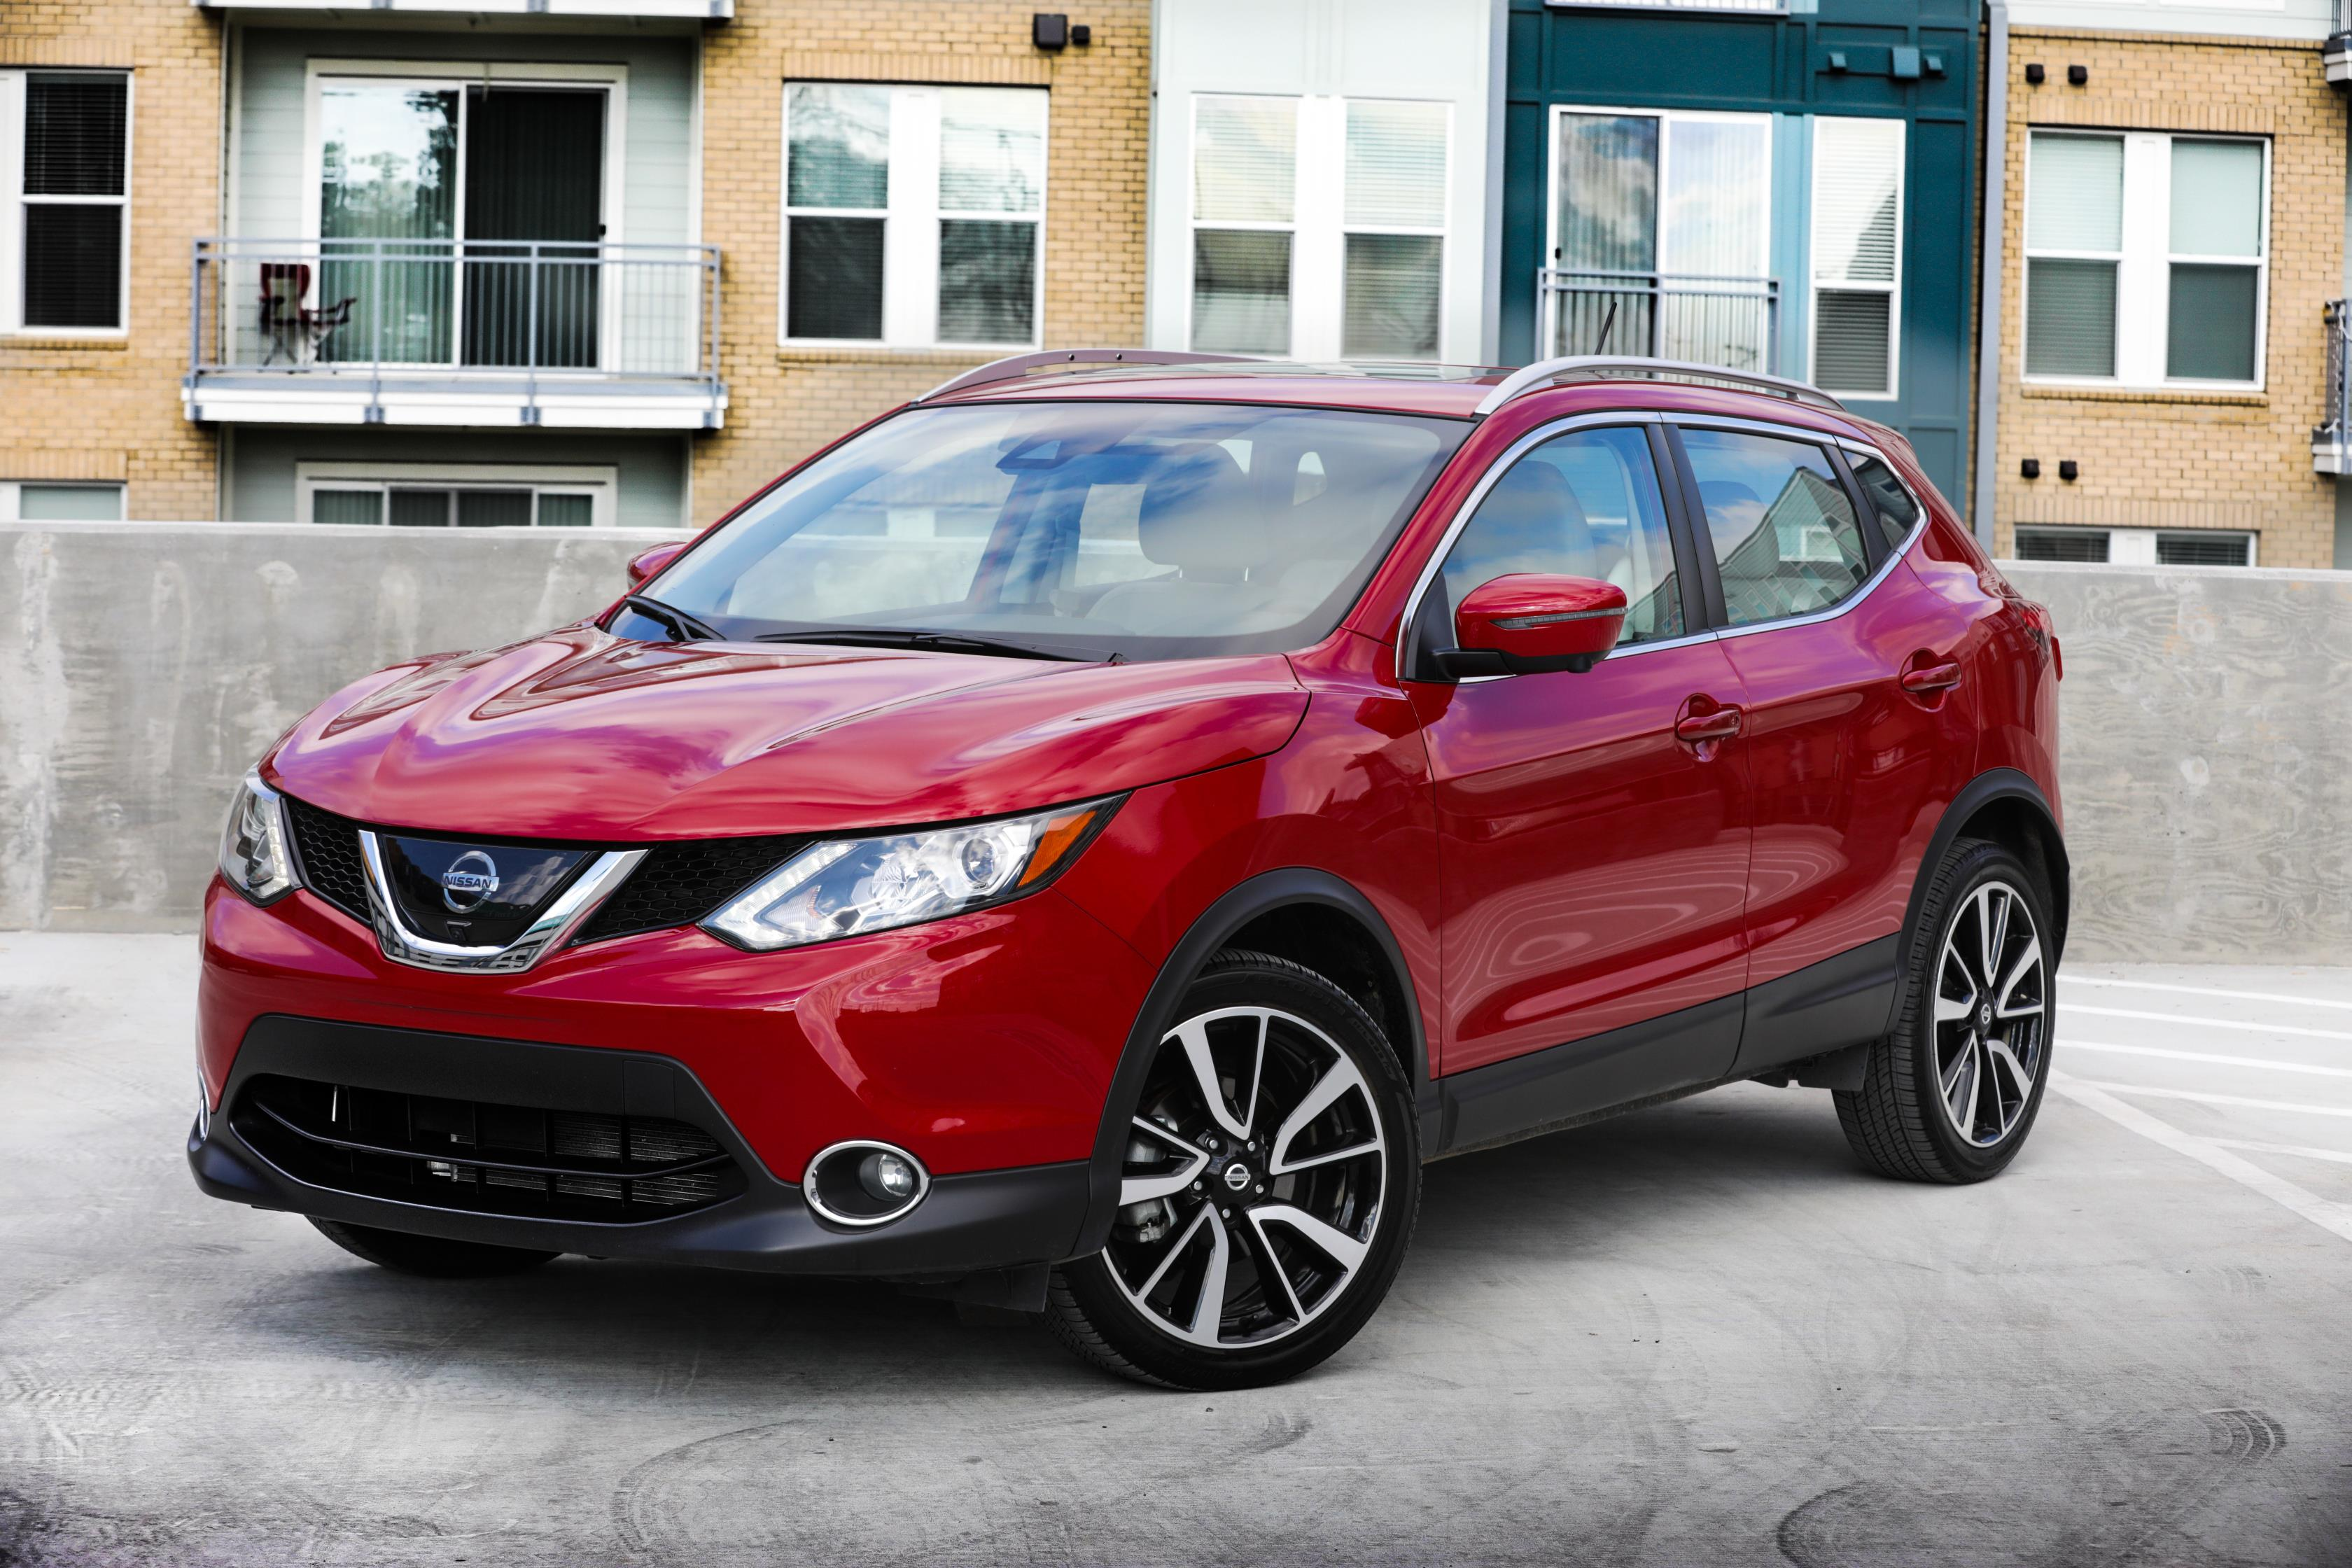 7 Passenger Suv List >> NISSAN ANNOUNCES U.S. PRICING FOR 2018 ROGUE SPORT ...